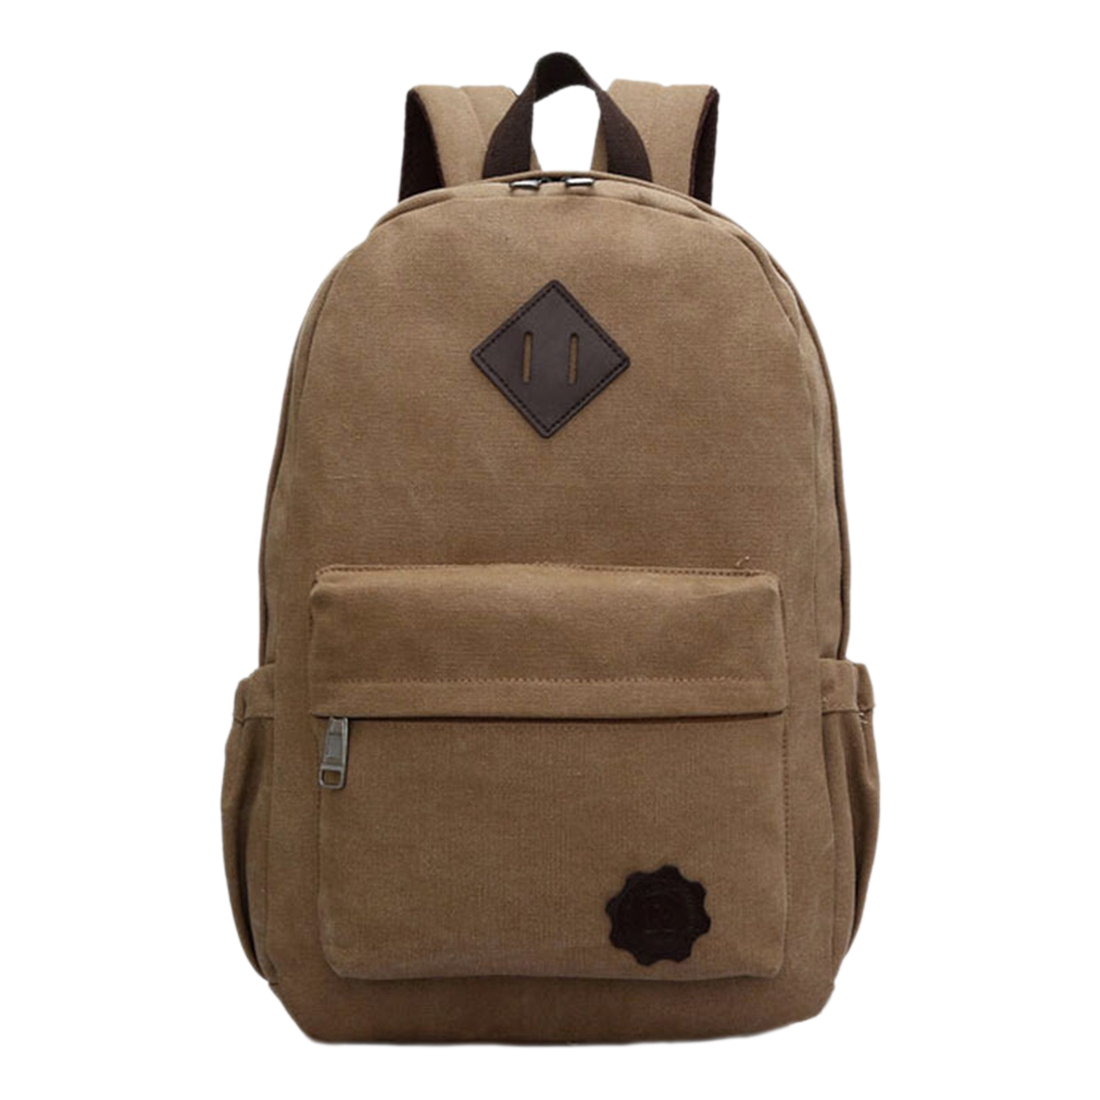 5 pcs of Vintage Men Canvas Backpack Fashion School Bag Casual Travel Rucksack Shoulder Bag, Brown стоимость